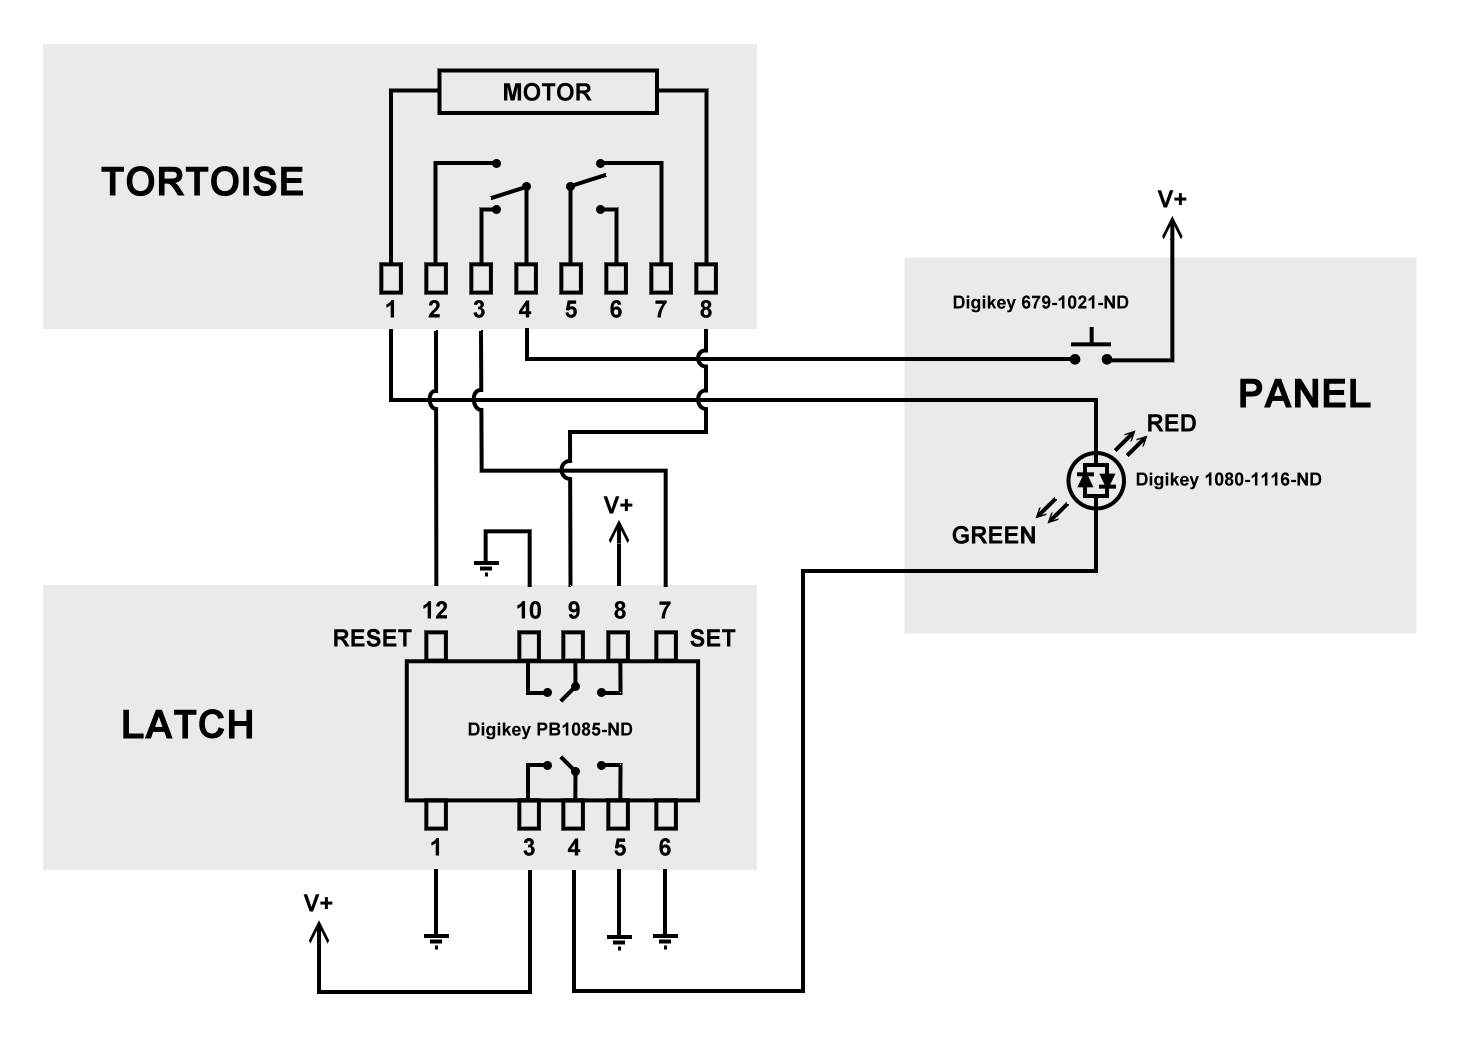 [DIAGRAM] Tortoise Switch Machine Wiring Diagram Connector